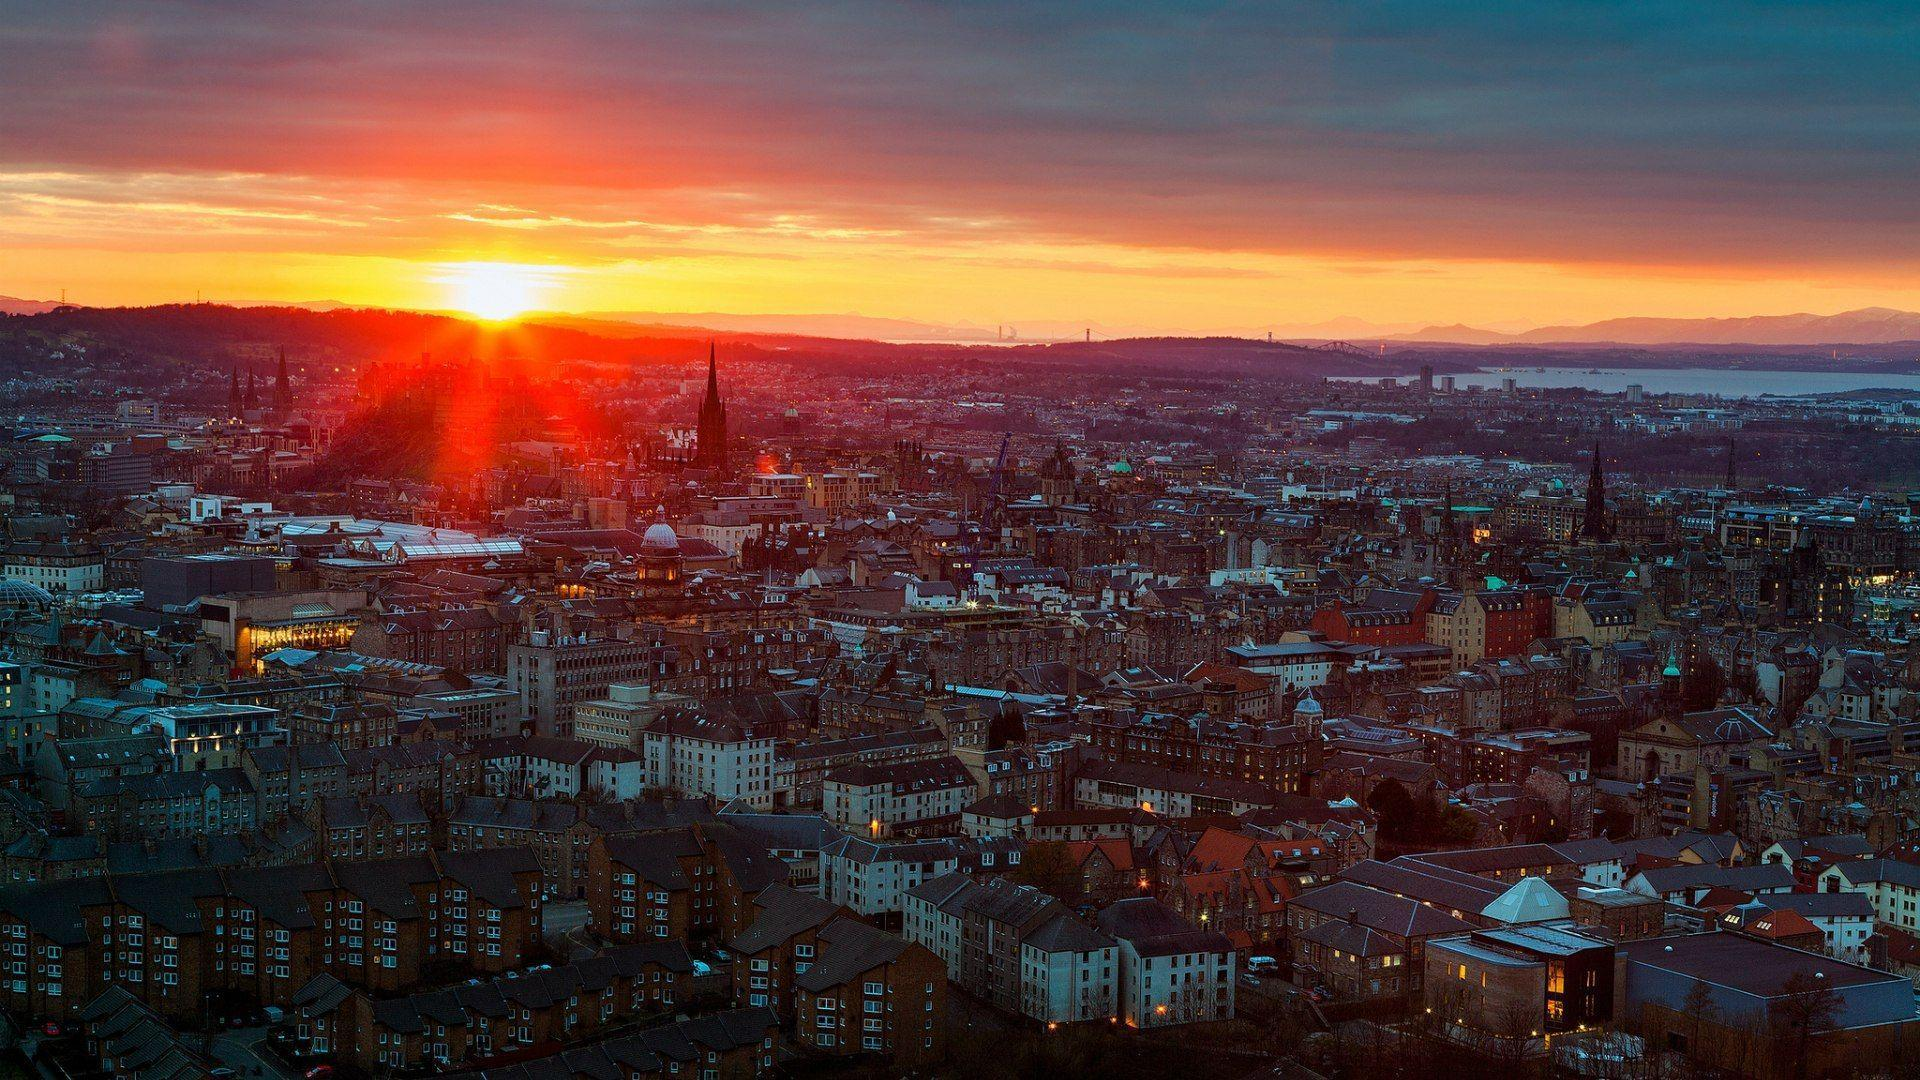 Sunset in Edinburgh, Scotland wallpapers and image